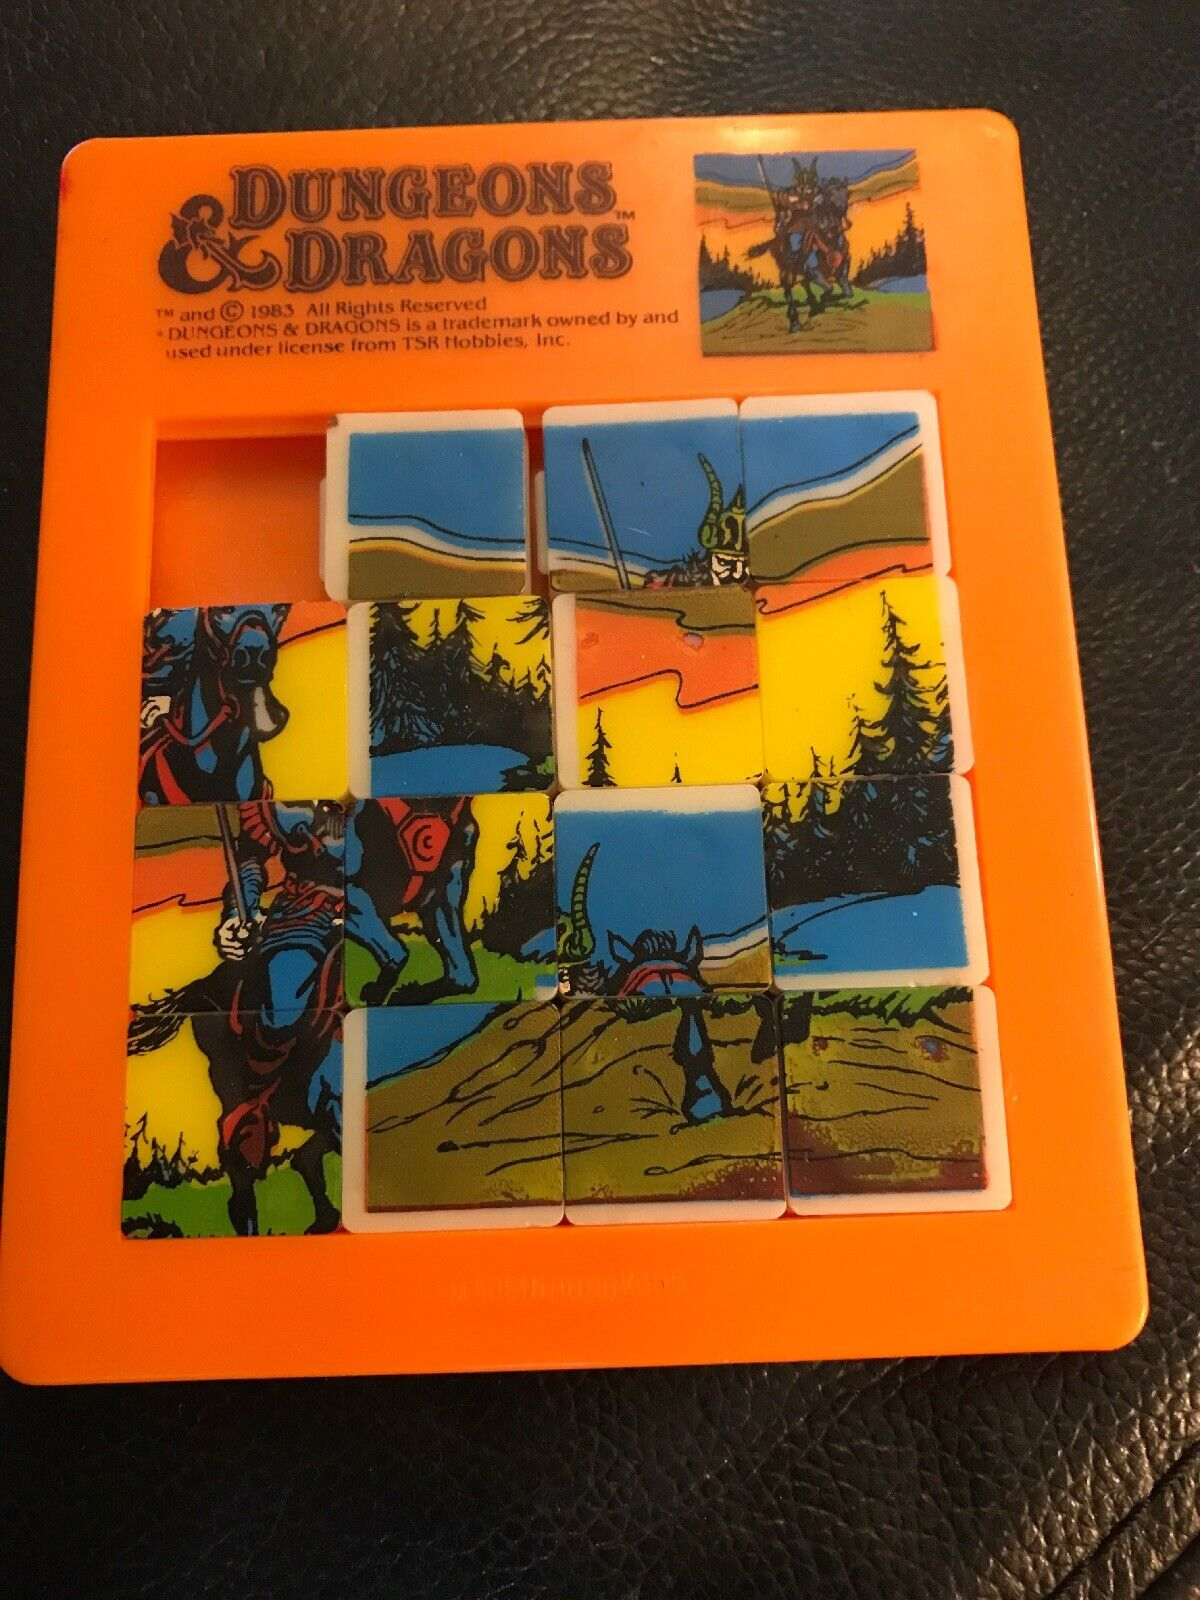 1983 DUNGEONS & DRAGONS SLIDING PUZZLE BY TSR TSR TSR